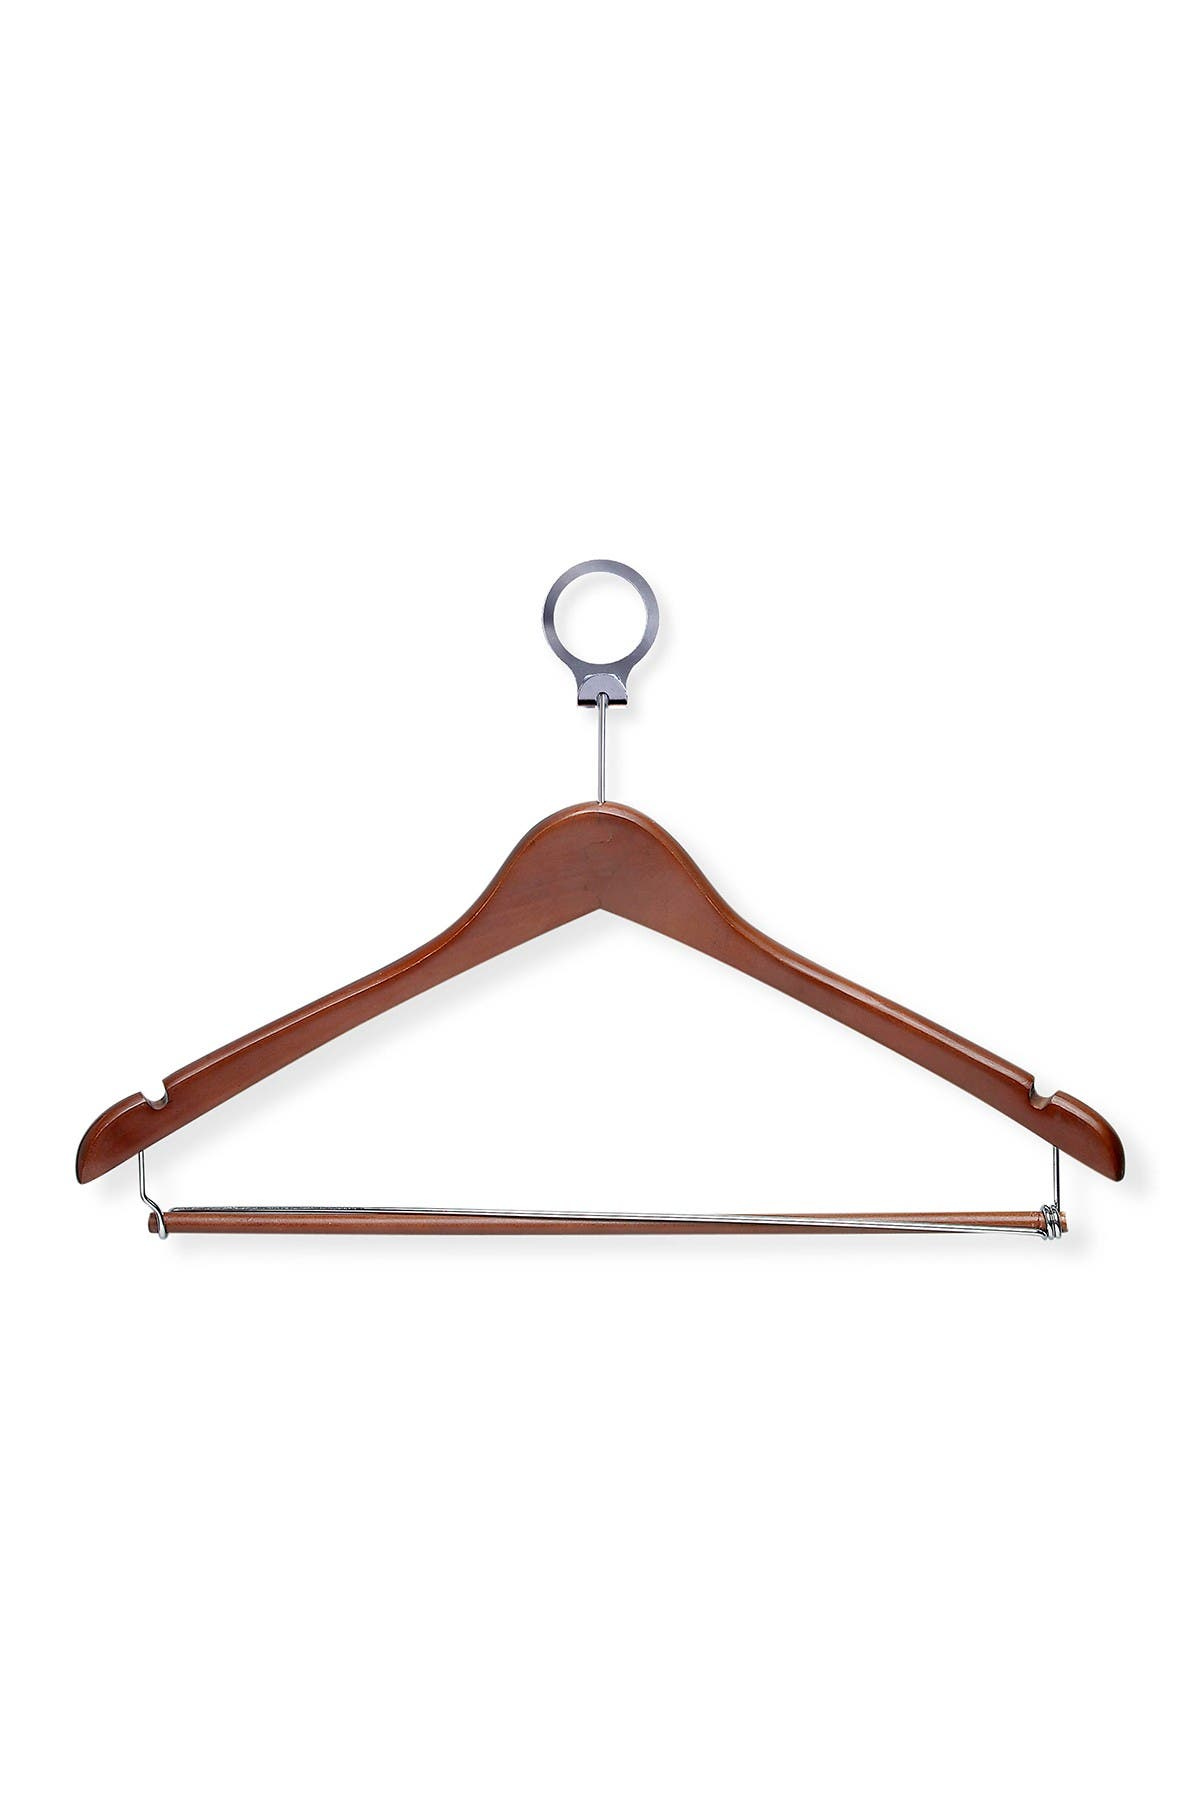 Image of Honey-Can-Do 24 Pack Cherry Hotel Hangers